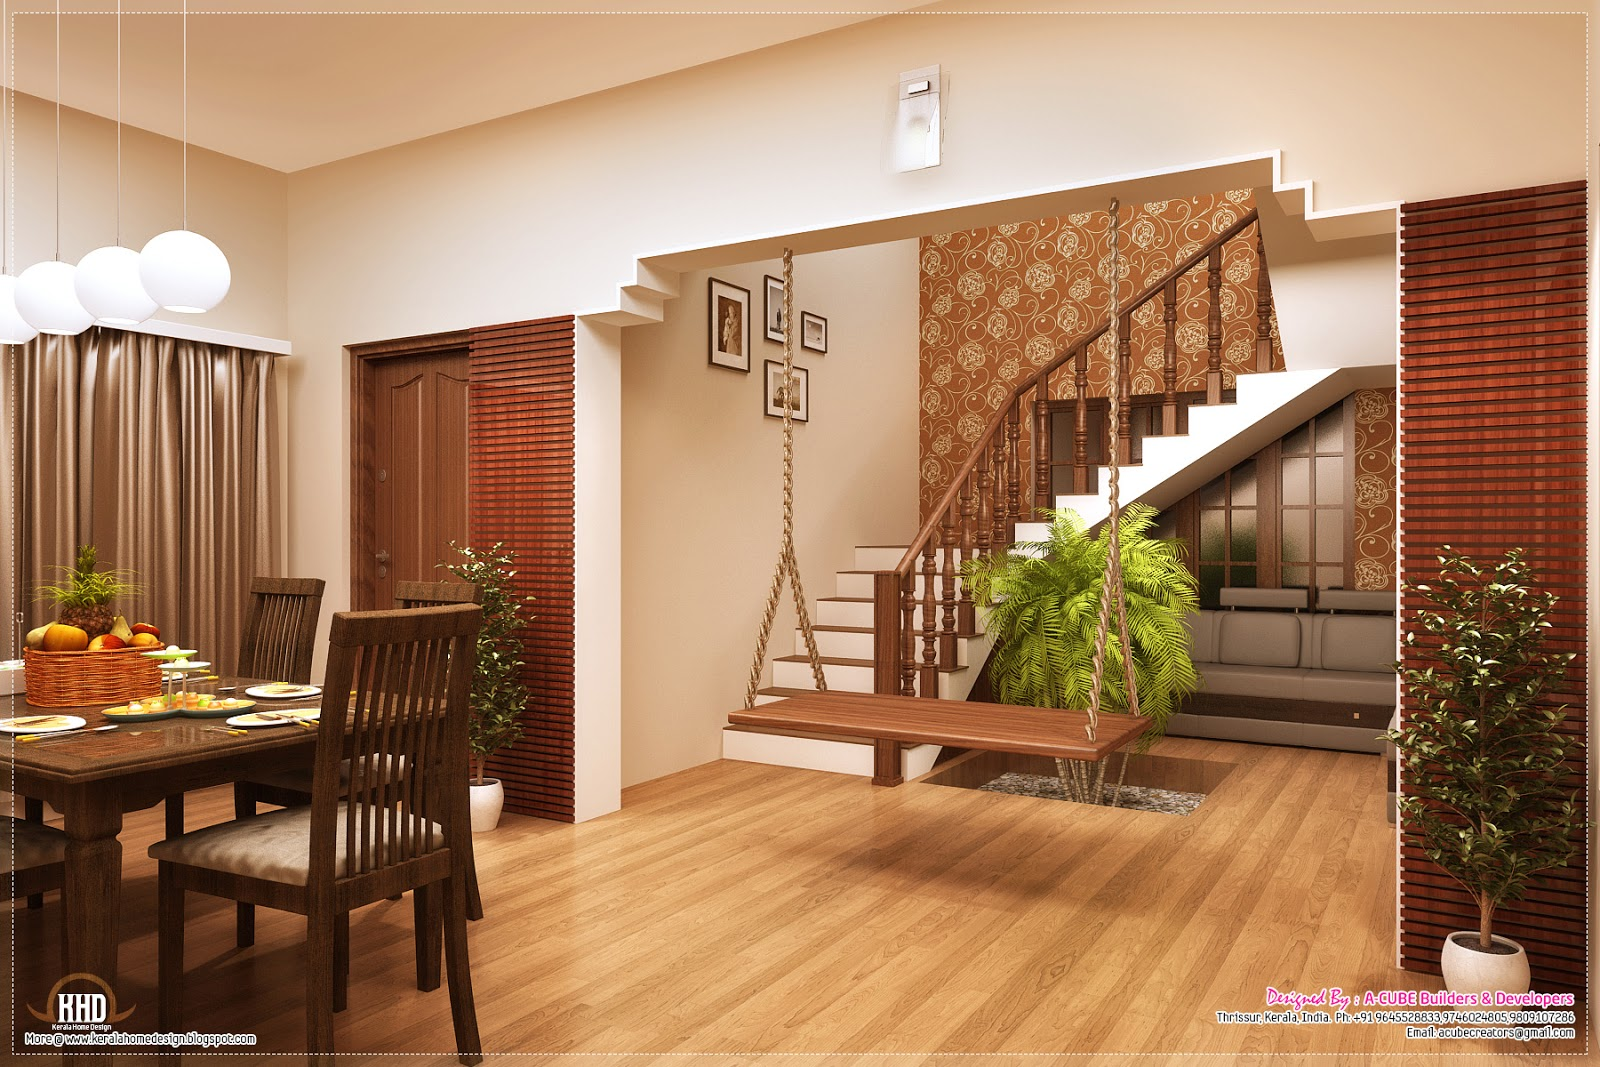 Awesome interior decoration ideas kerala home design and for Inner house decoration designs